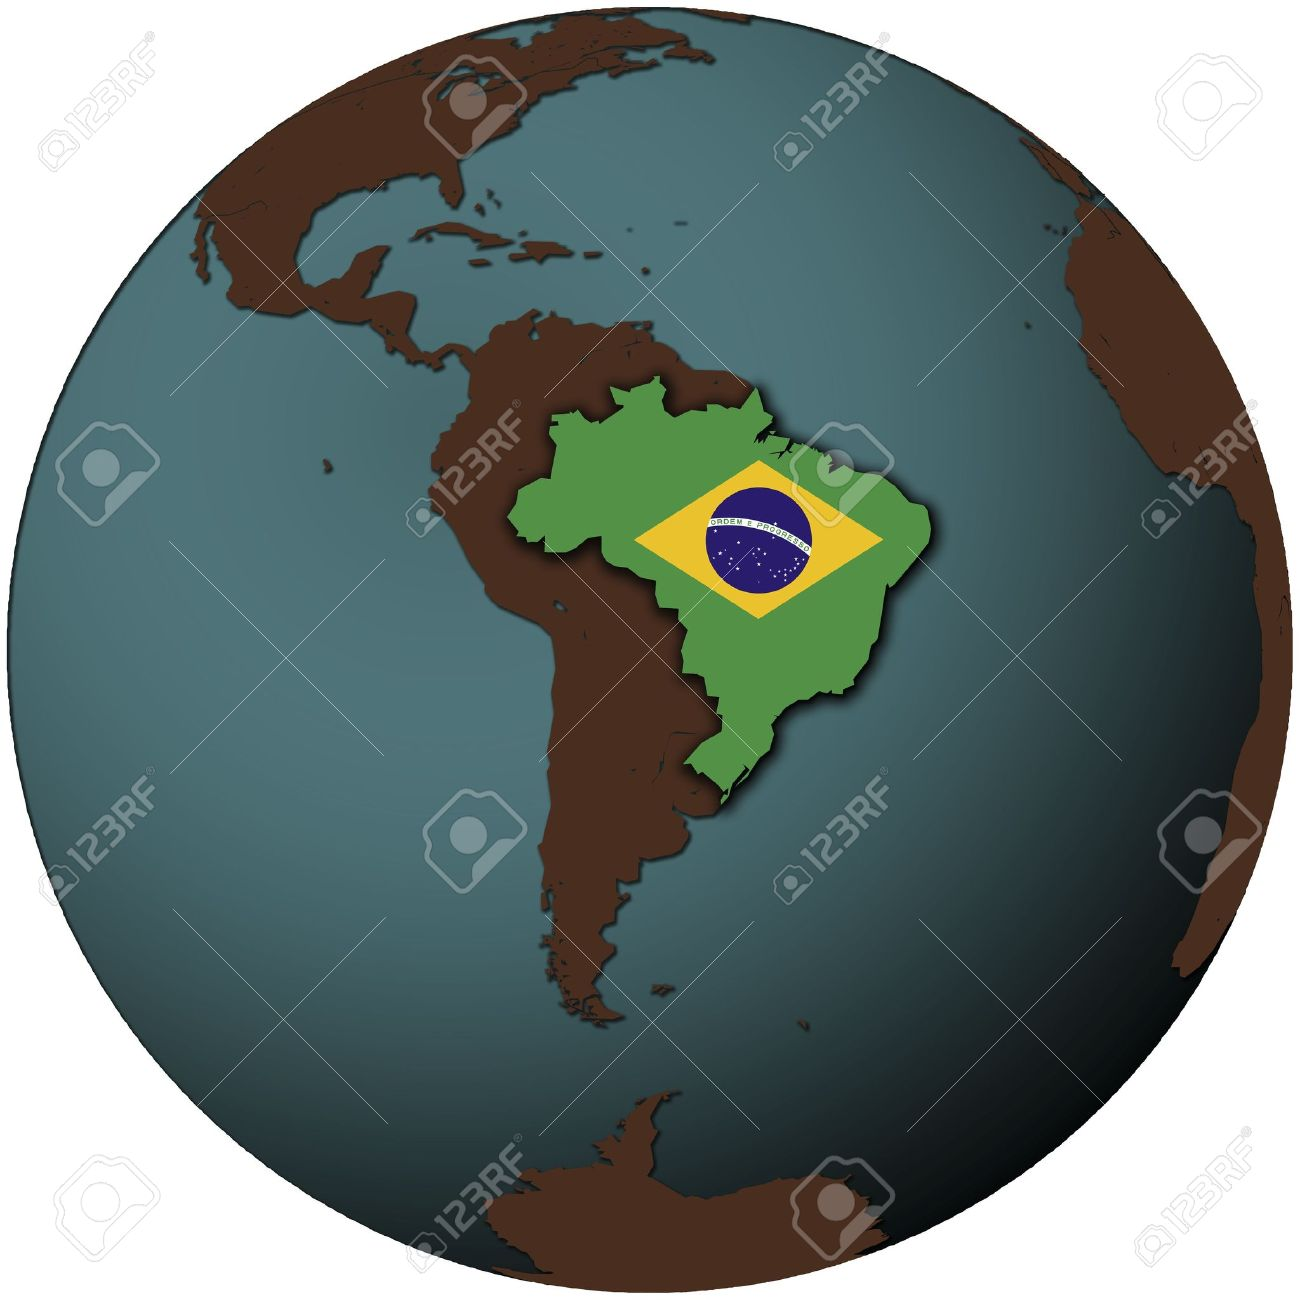 Brazil Flag On Map Of Earth Globe Stock Photo Picture And Royalty Free Image Image 6149363